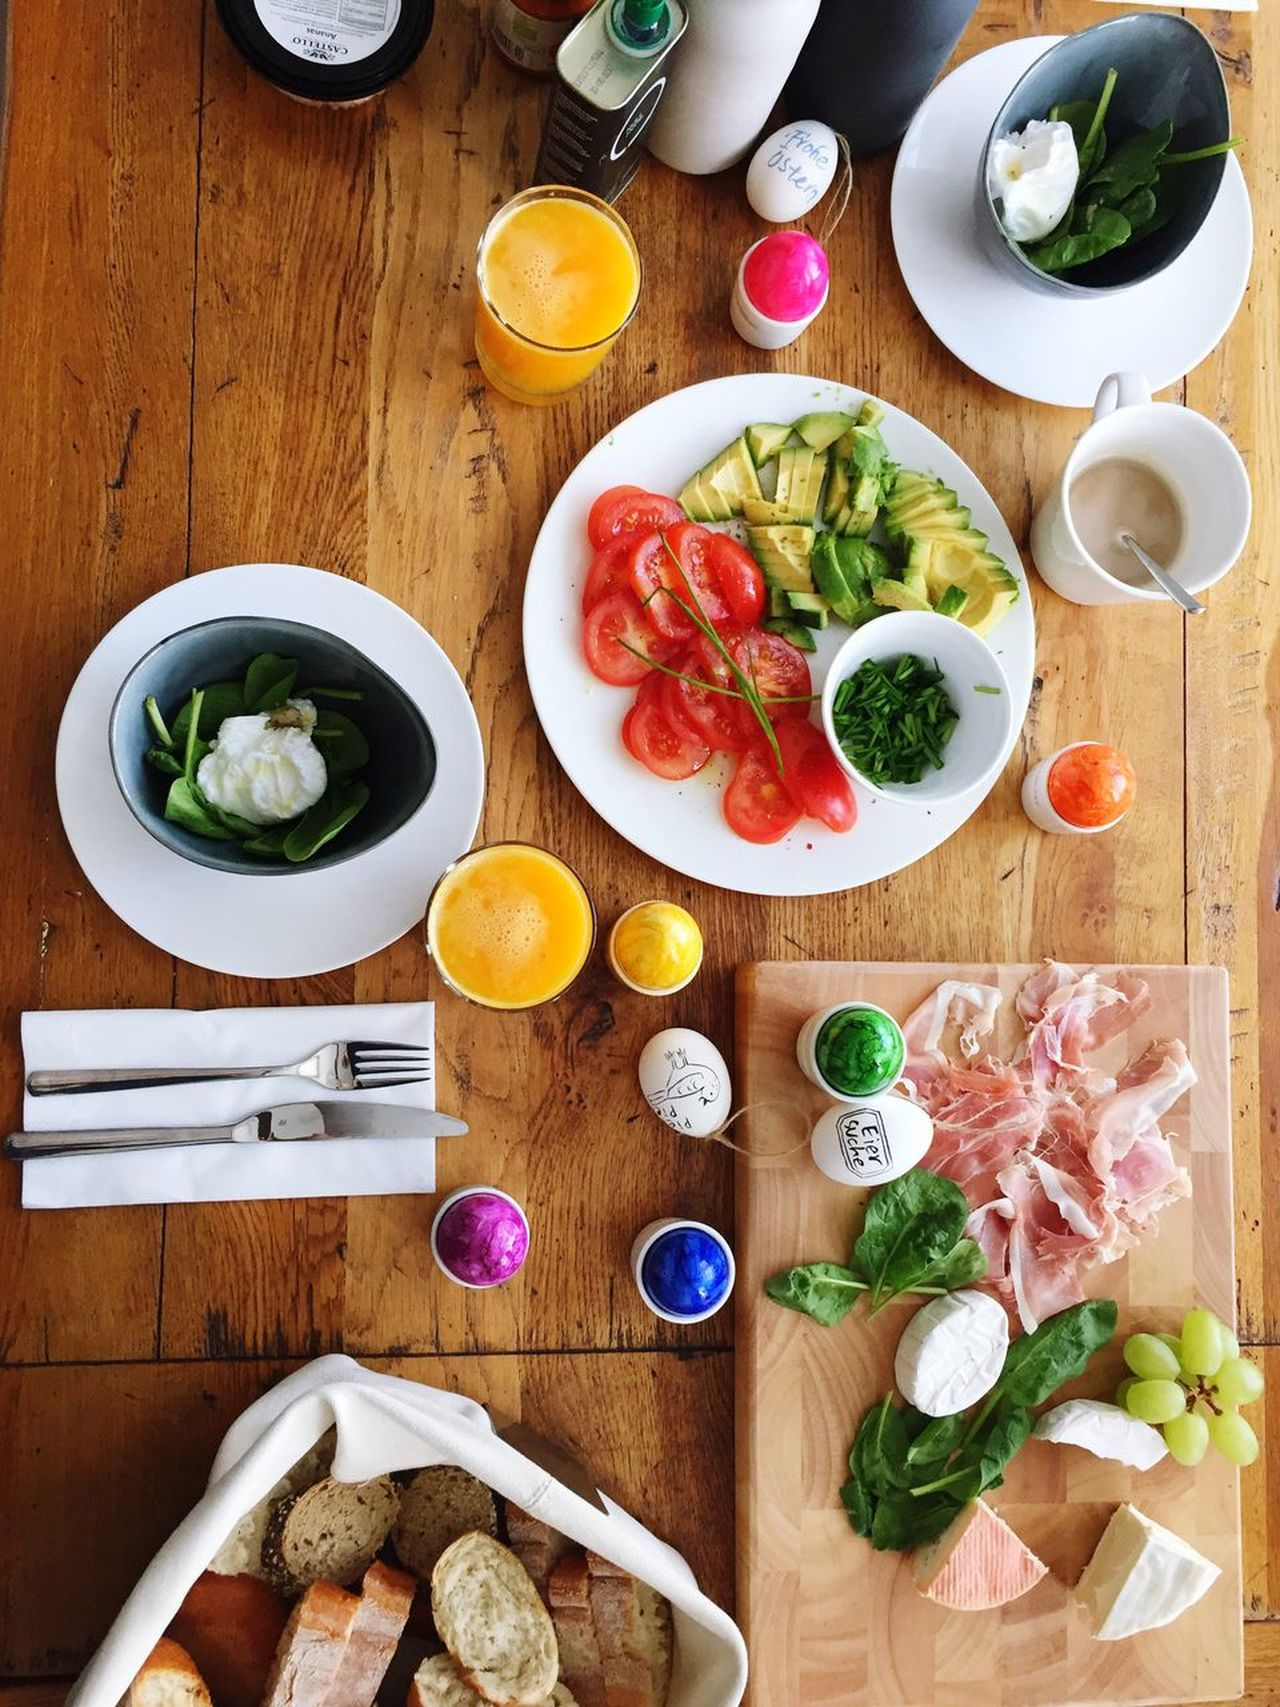 Pepper Orange Juice  Easter Sunday Easter Eggs Breakfast Egg Table Breakfast Time Knife Oil Ham Cheese Bread Bread & Butter Good Morning Quality Time Architecture Food Healthy Eating Freshness Coffee Tomato Avocado